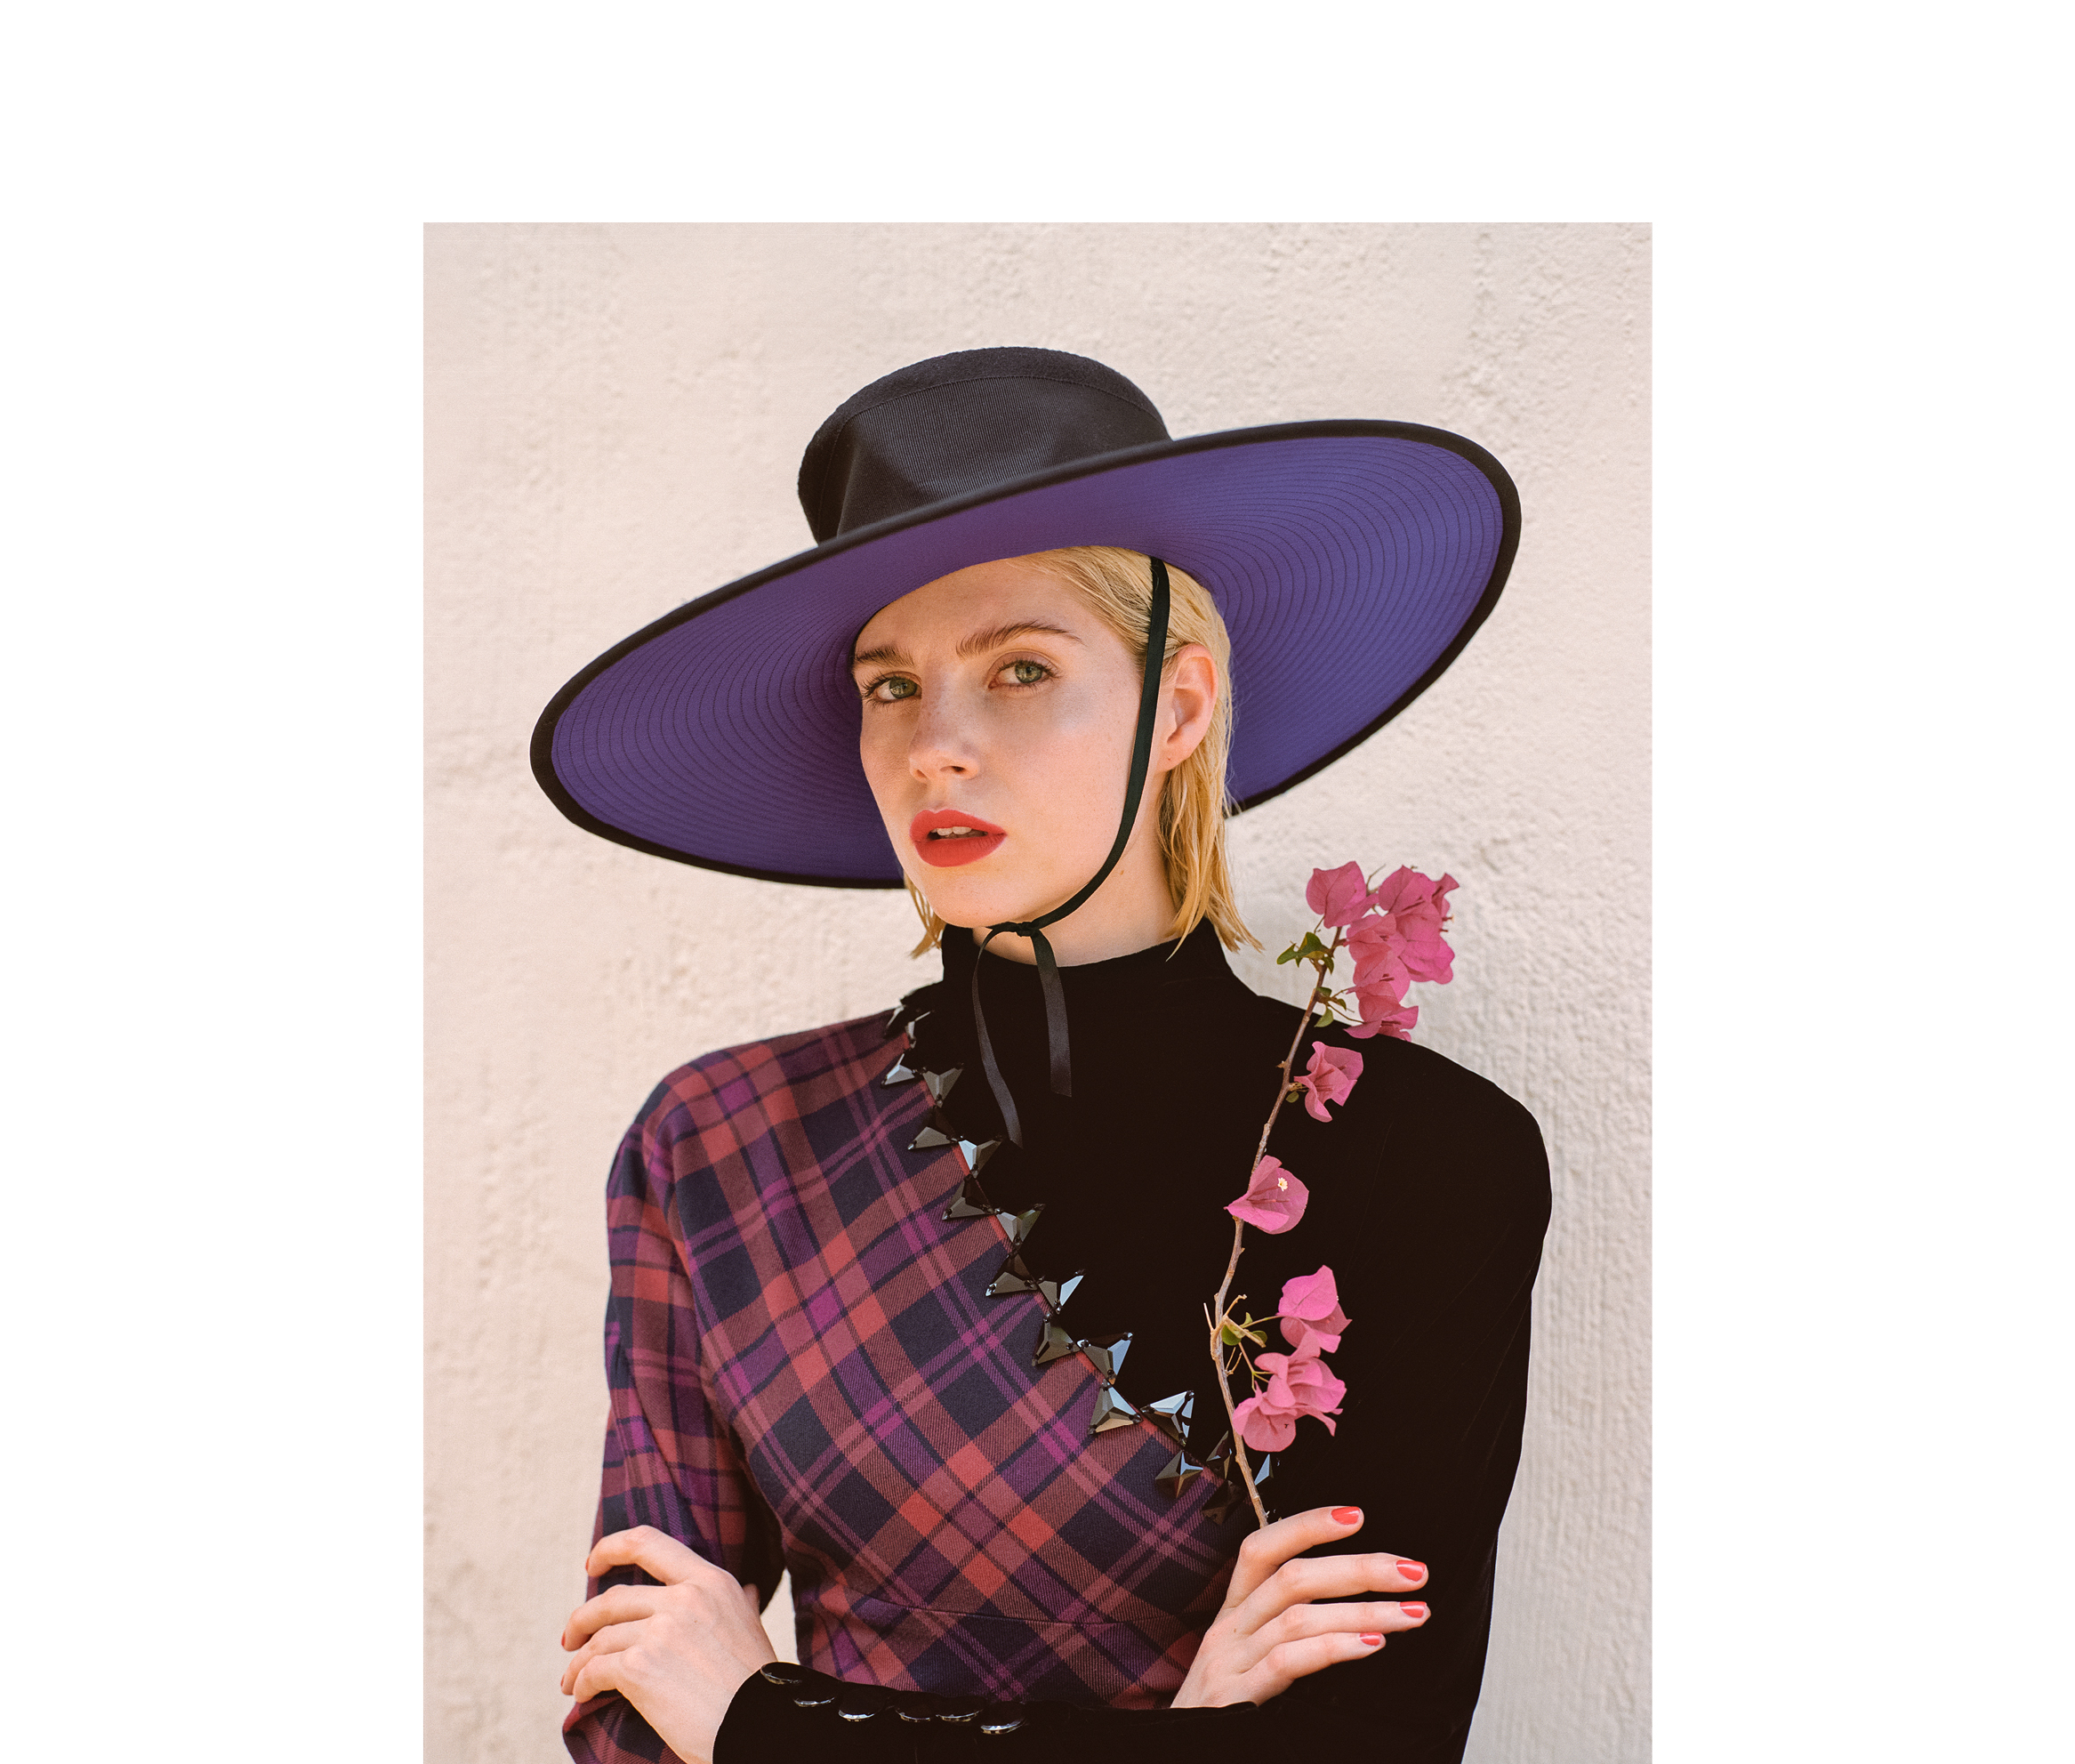 All clothing and hat by Marc Jacobs.